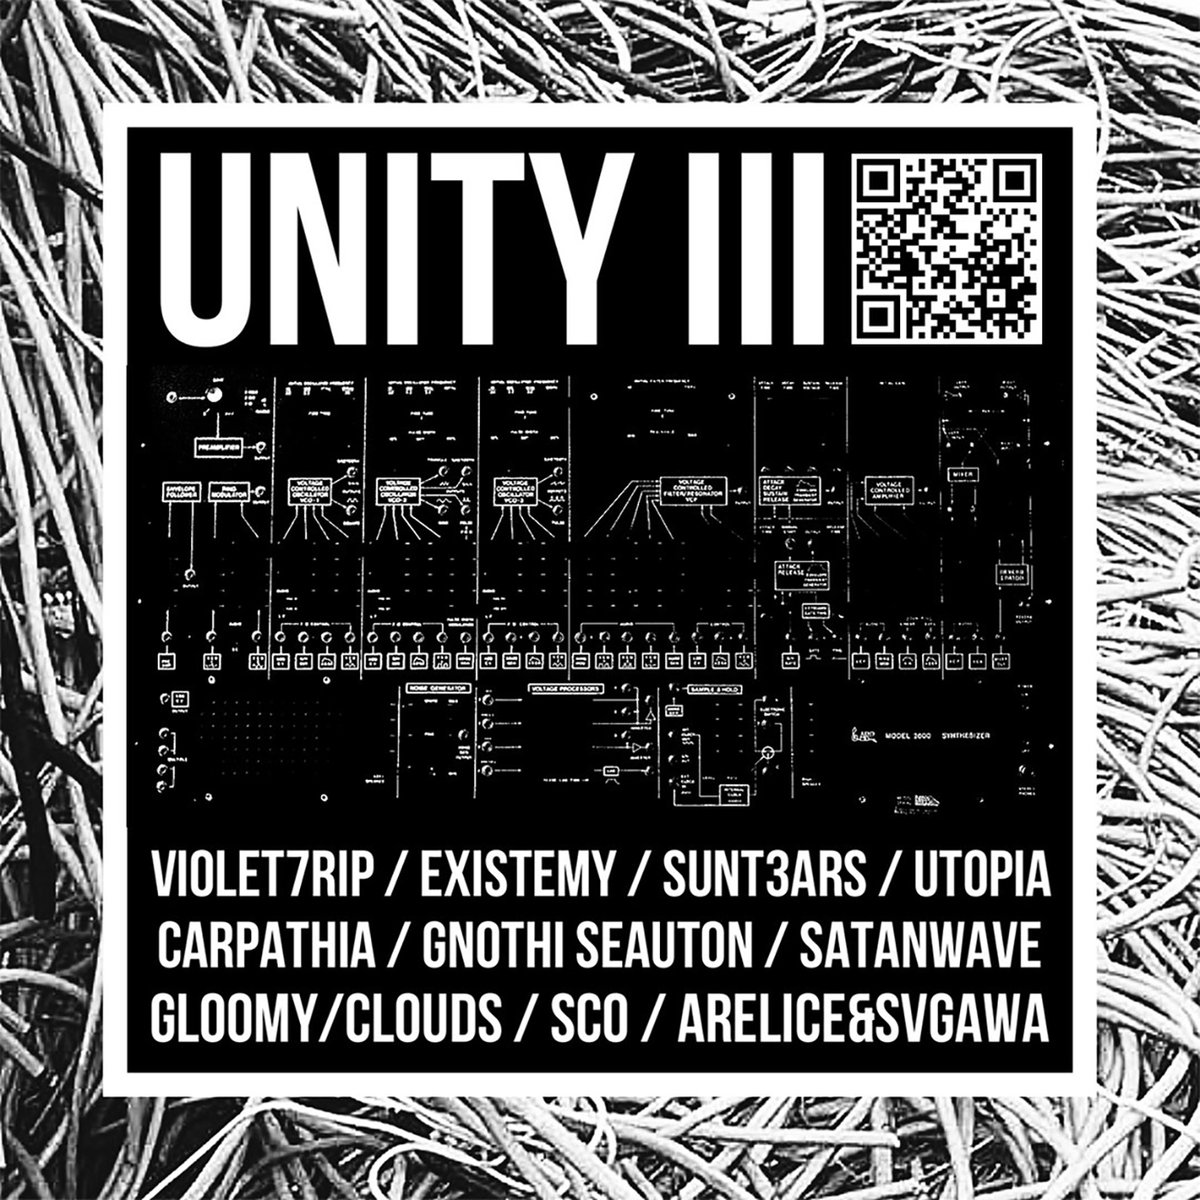 Carpathia - Psalm @ 'Various Artists - UNITY III' album (electronic, experimental)